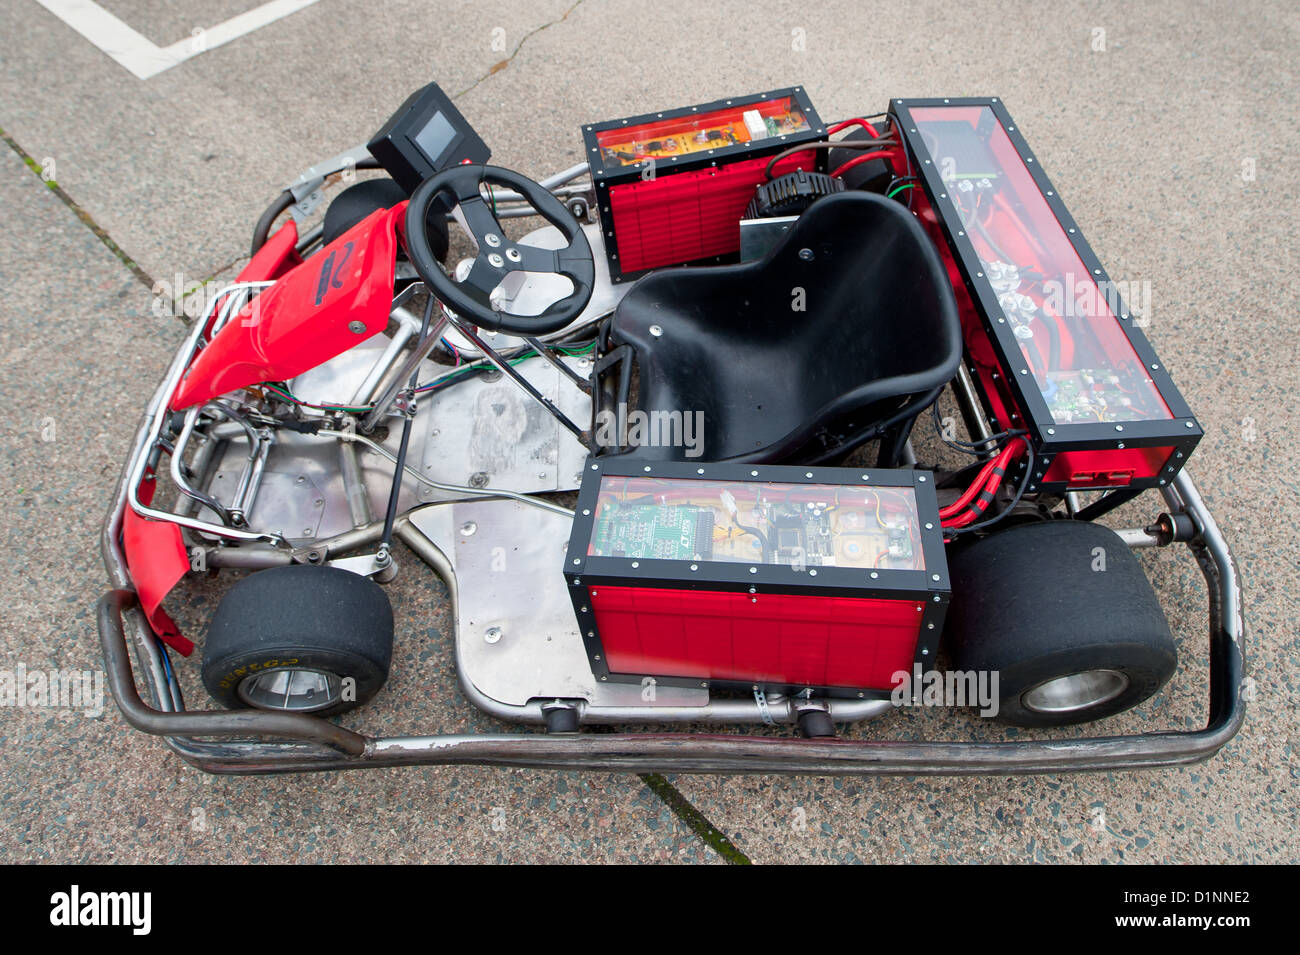 go kart motor stockfotos go kart motor bilder alamy. Black Bedroom Furniture Sets. Home Design Ideas